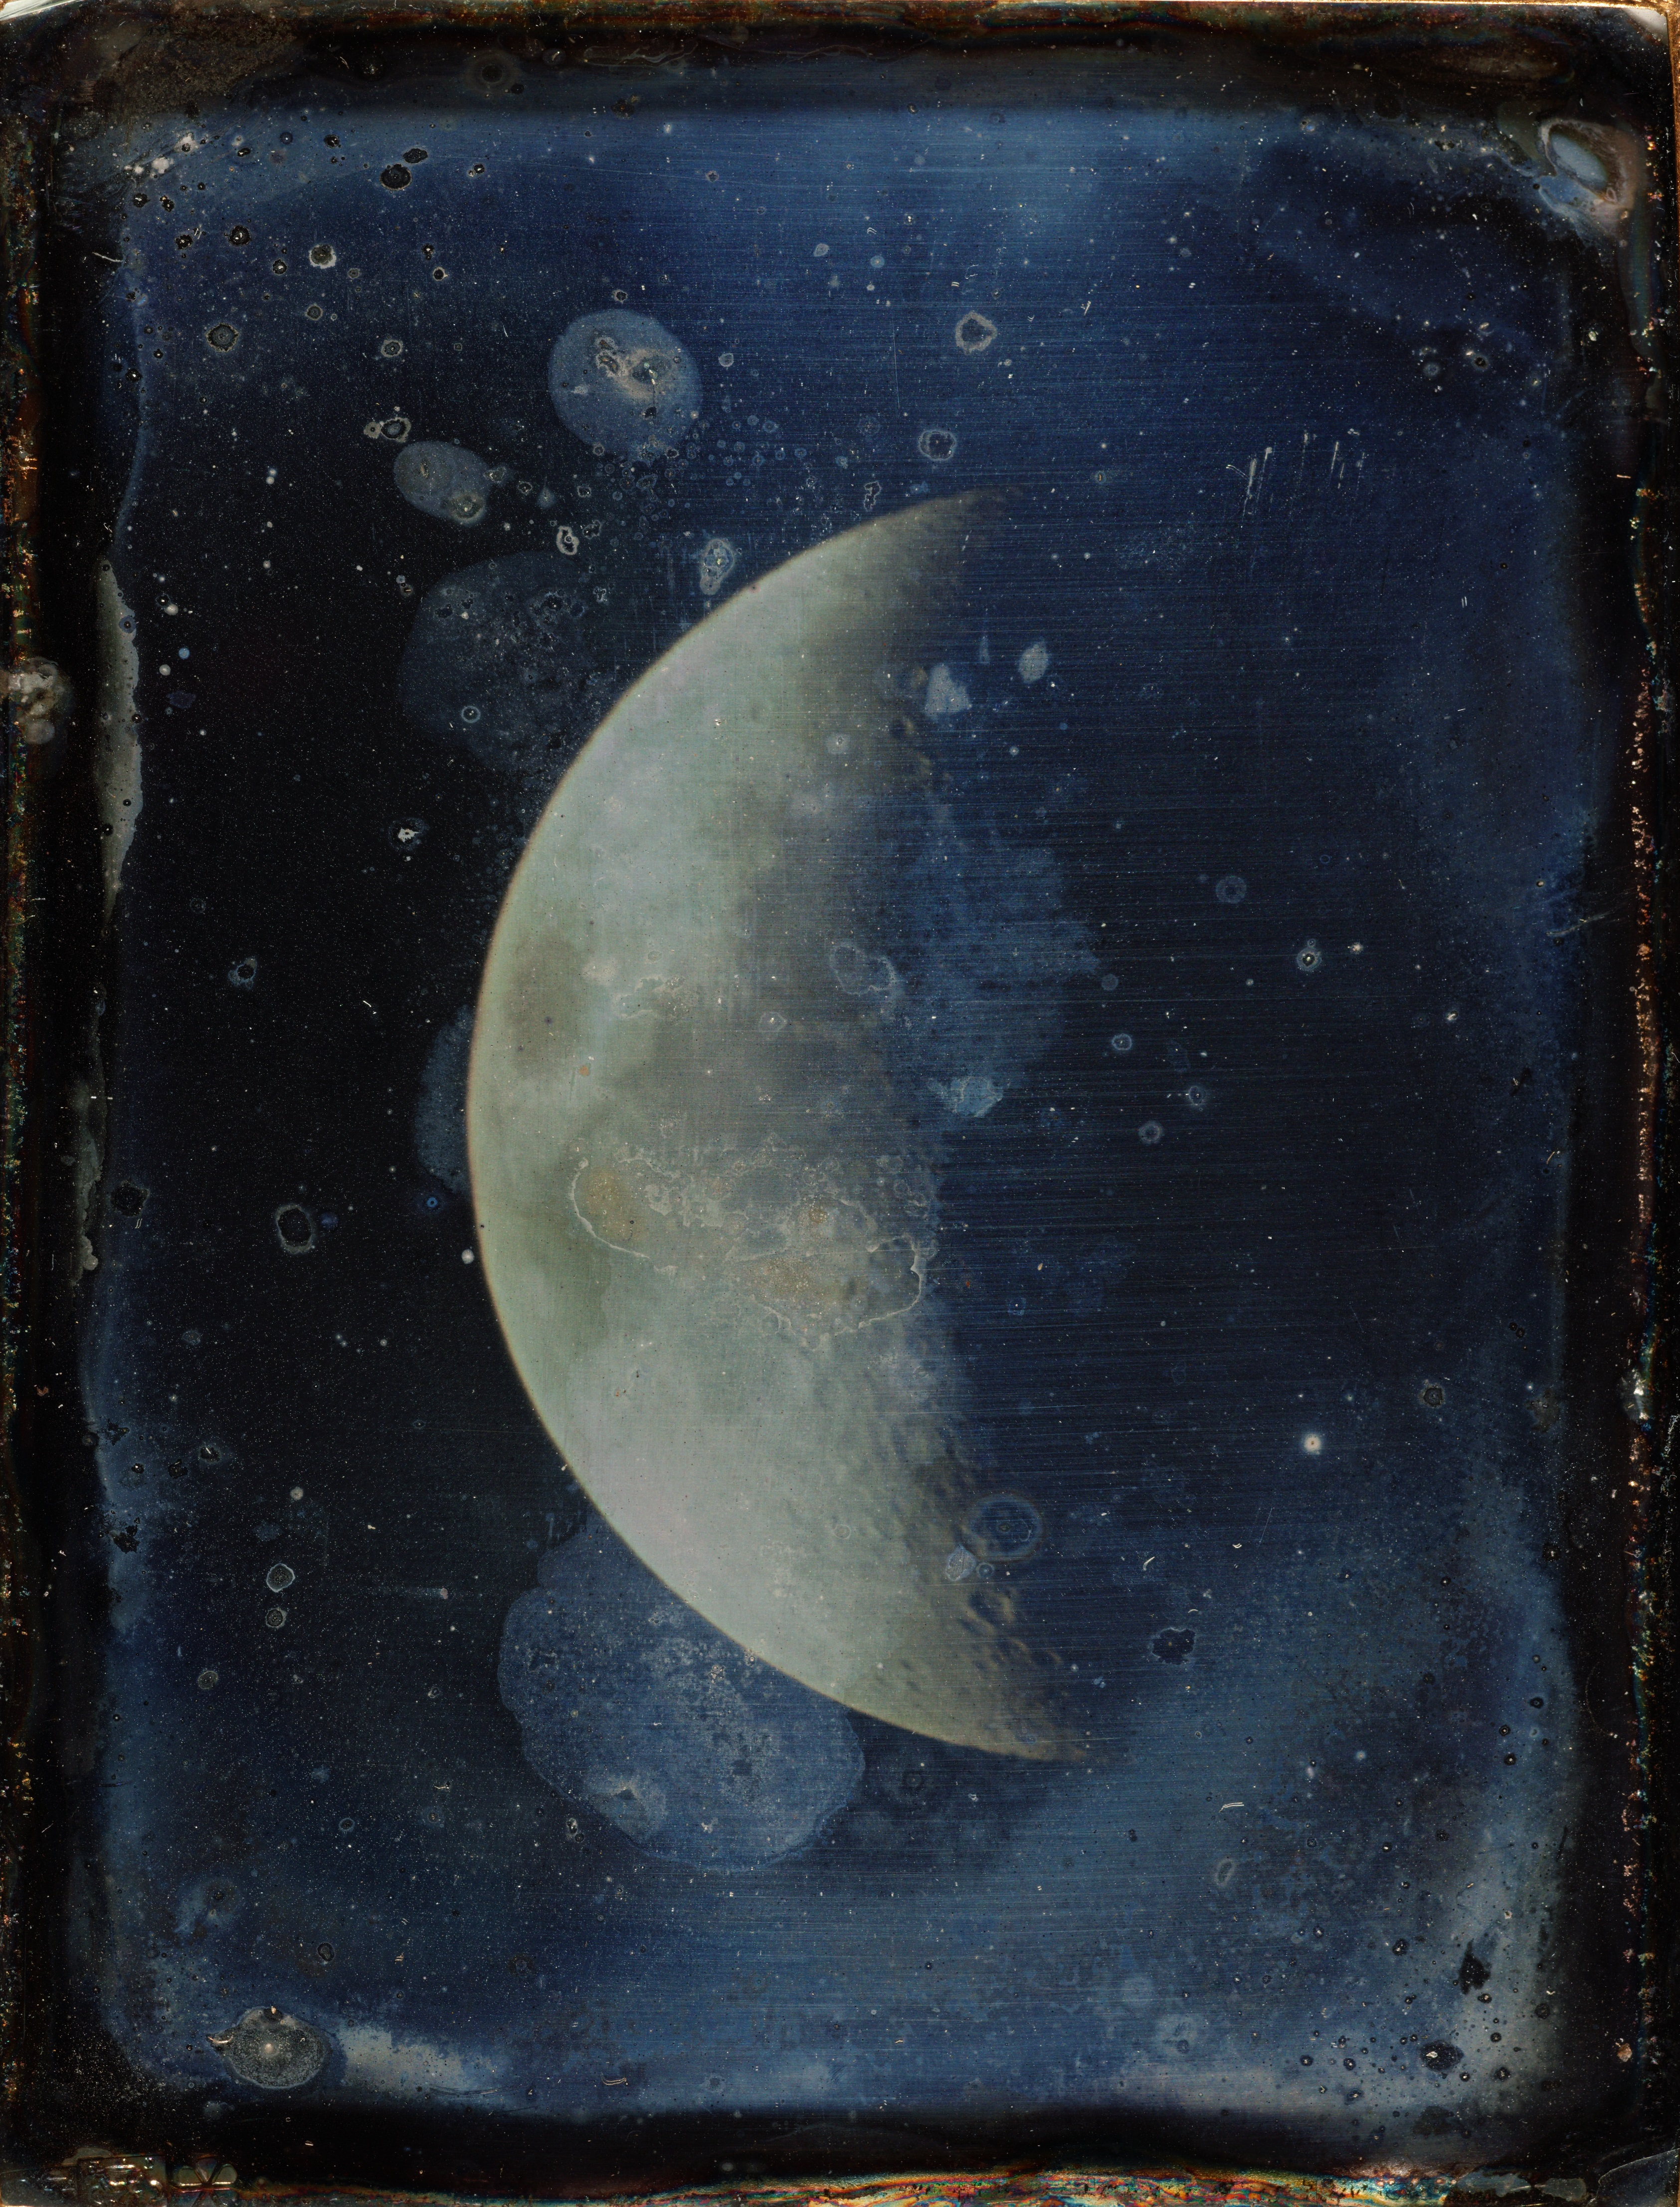 John Adams Whipple, (American, 1822–1891); View of the Moon, 1852; Daguerreotype; 3 ⅞ x 3 in. (9.8 x 7.6 cm). Considered to be one of the oldest existing photographs of the moon